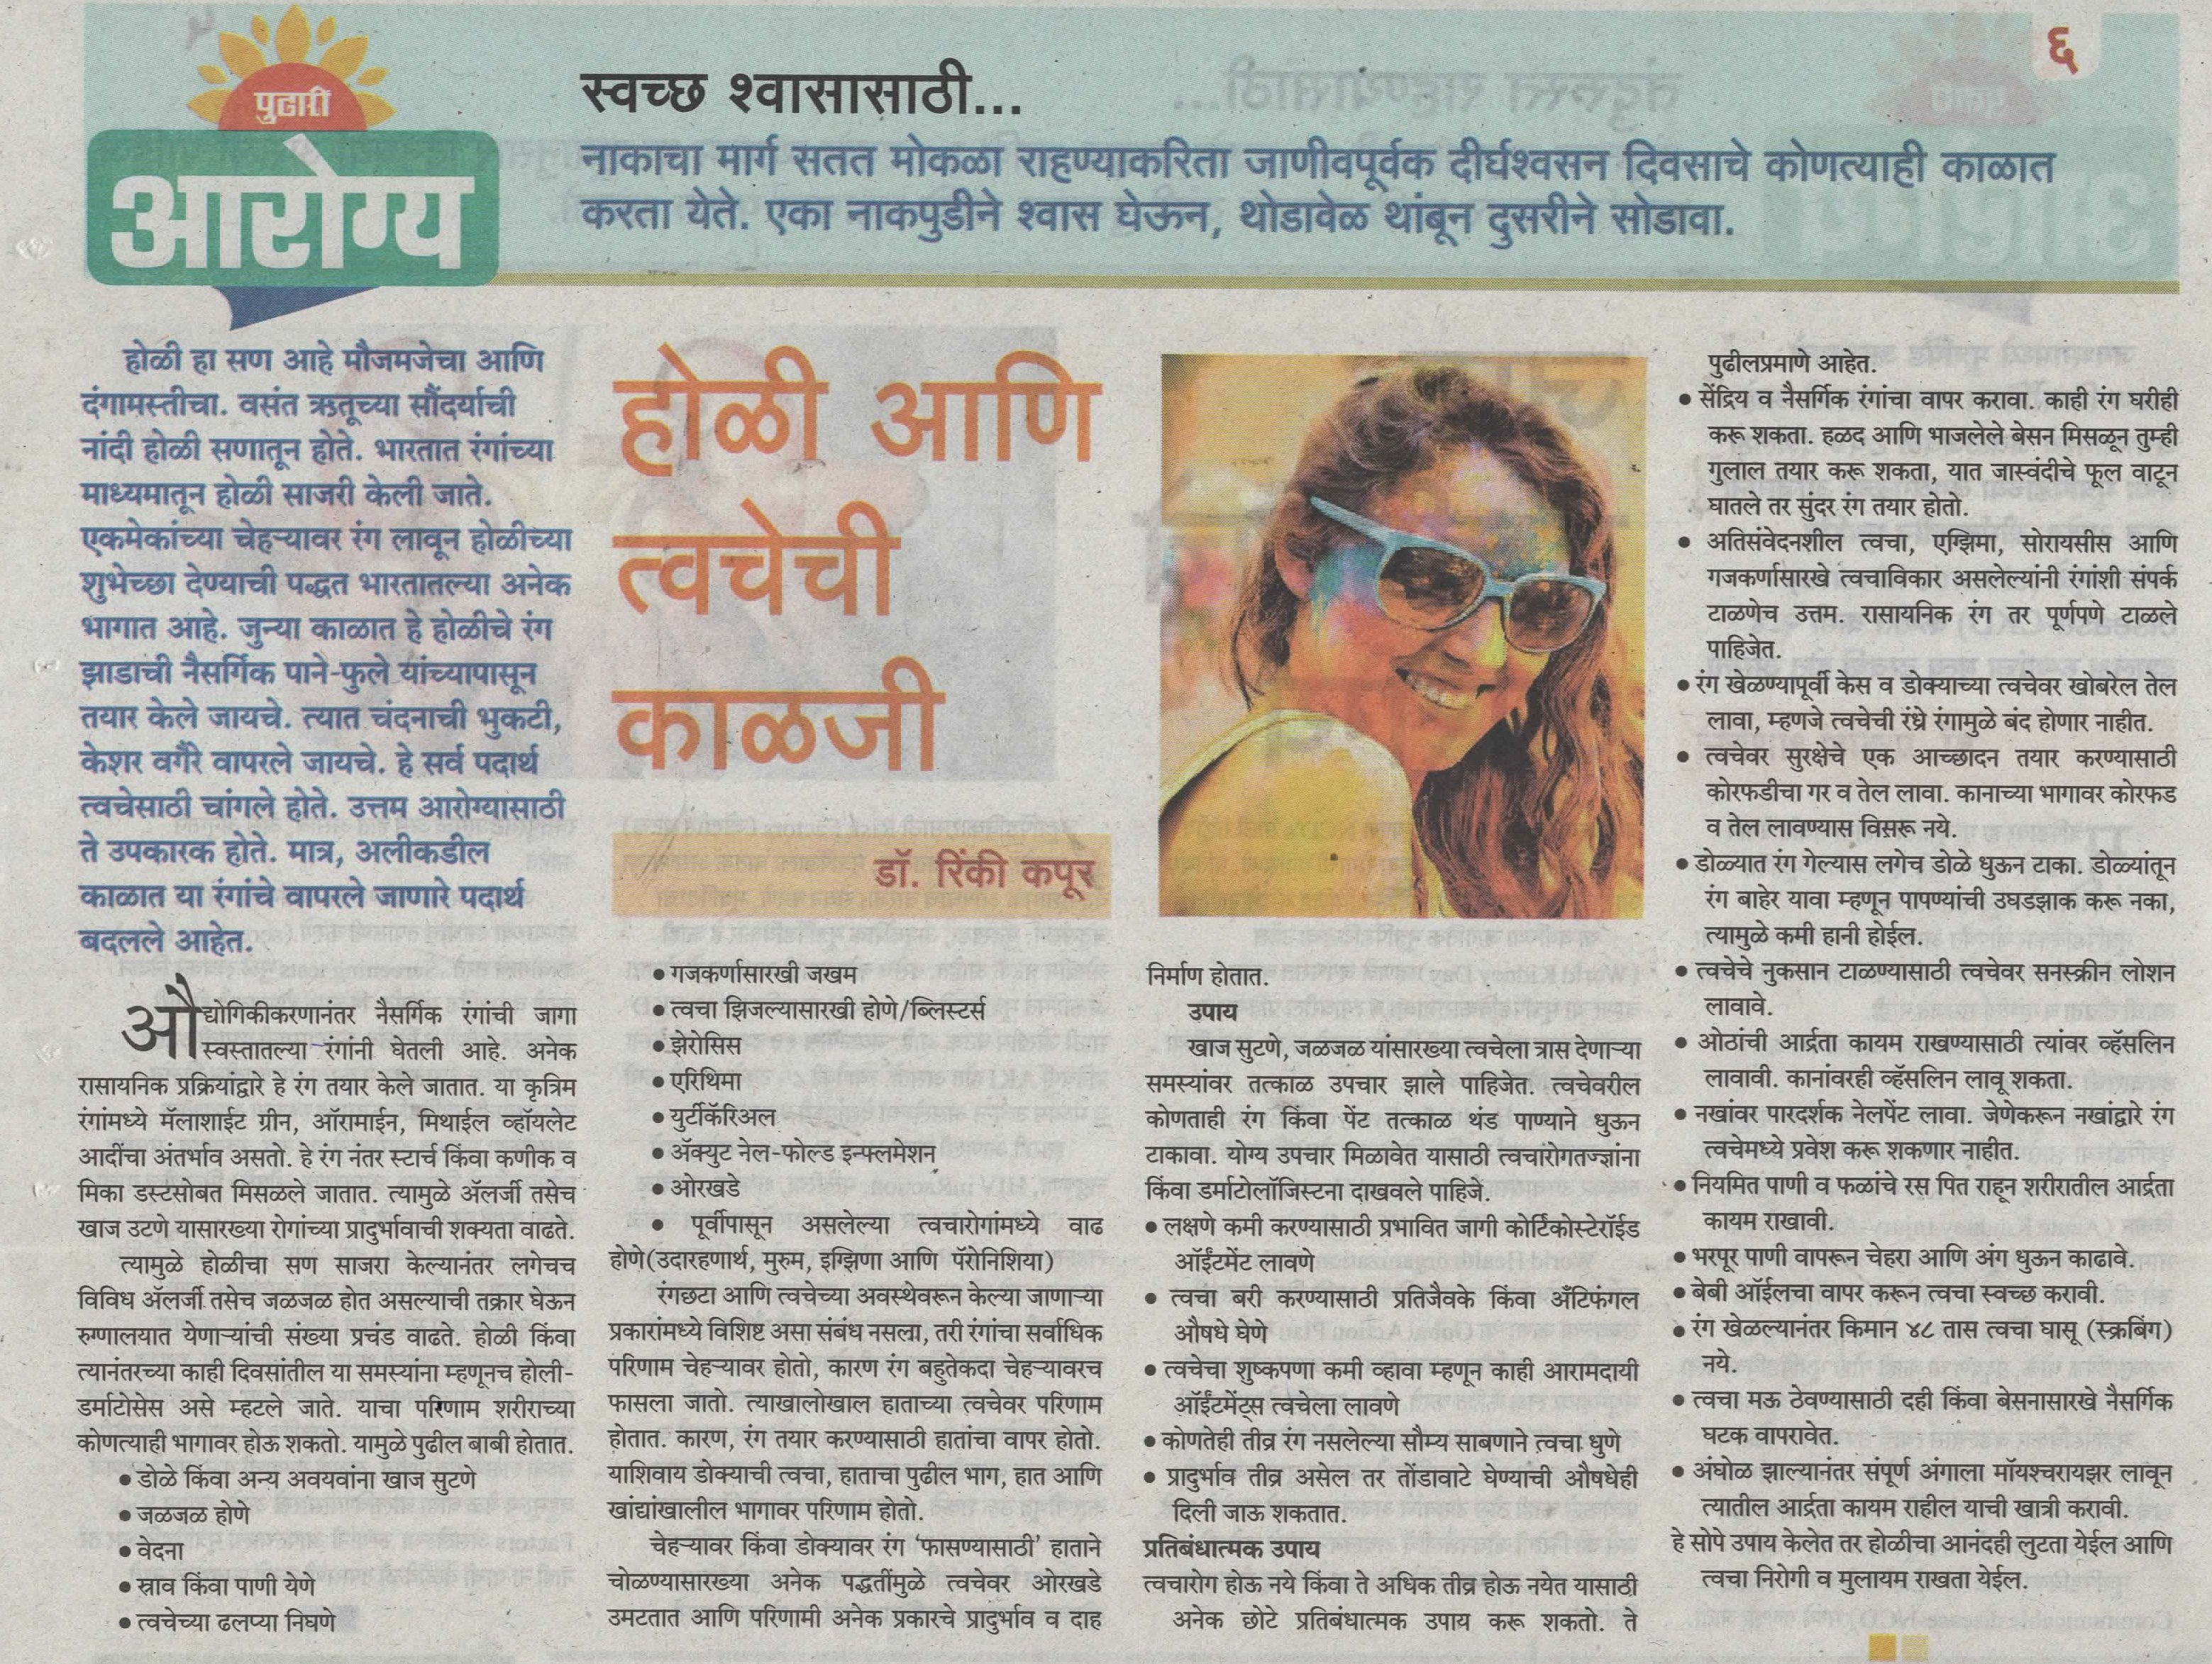 Holi And Skin Care - Pudhari